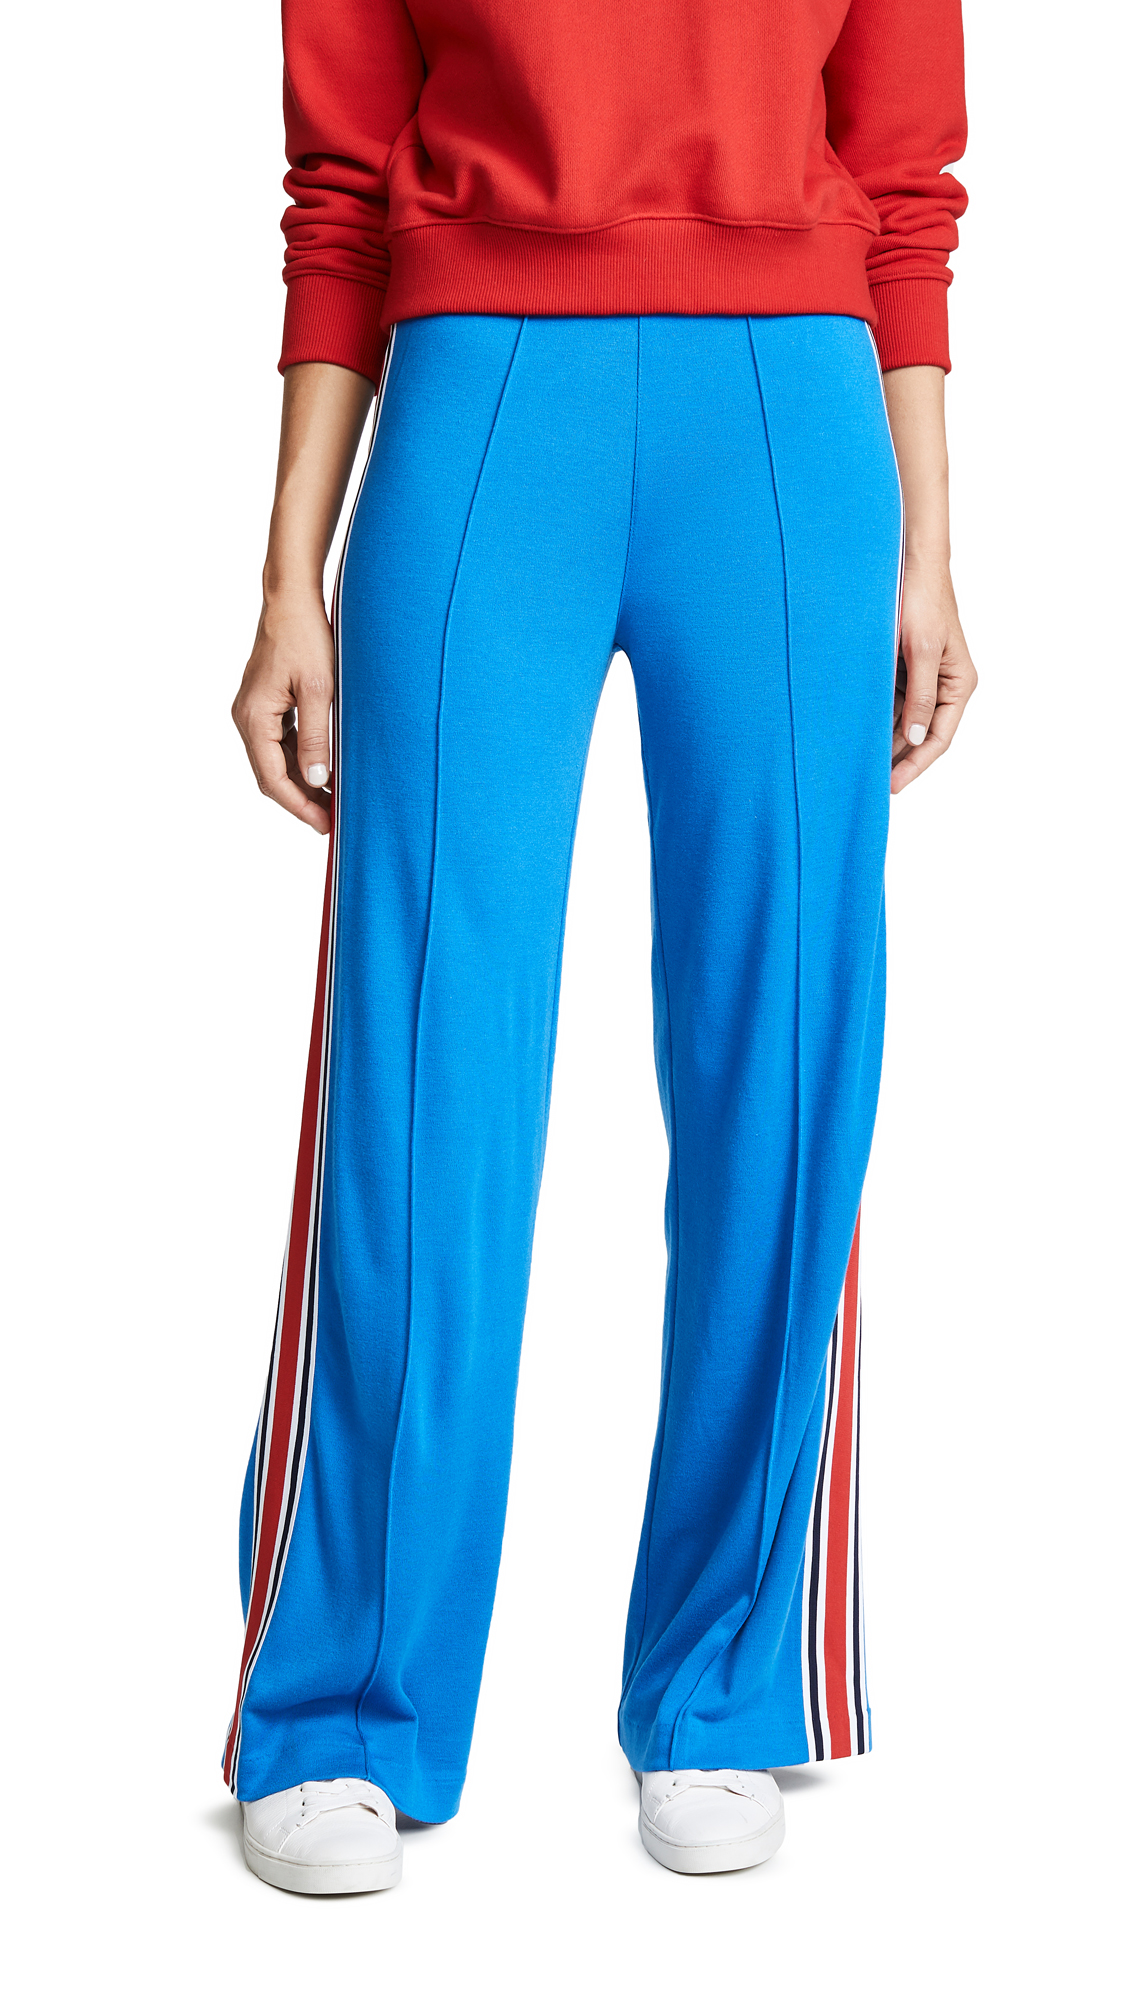 Tory Sport Track Pants In Galleria Blue